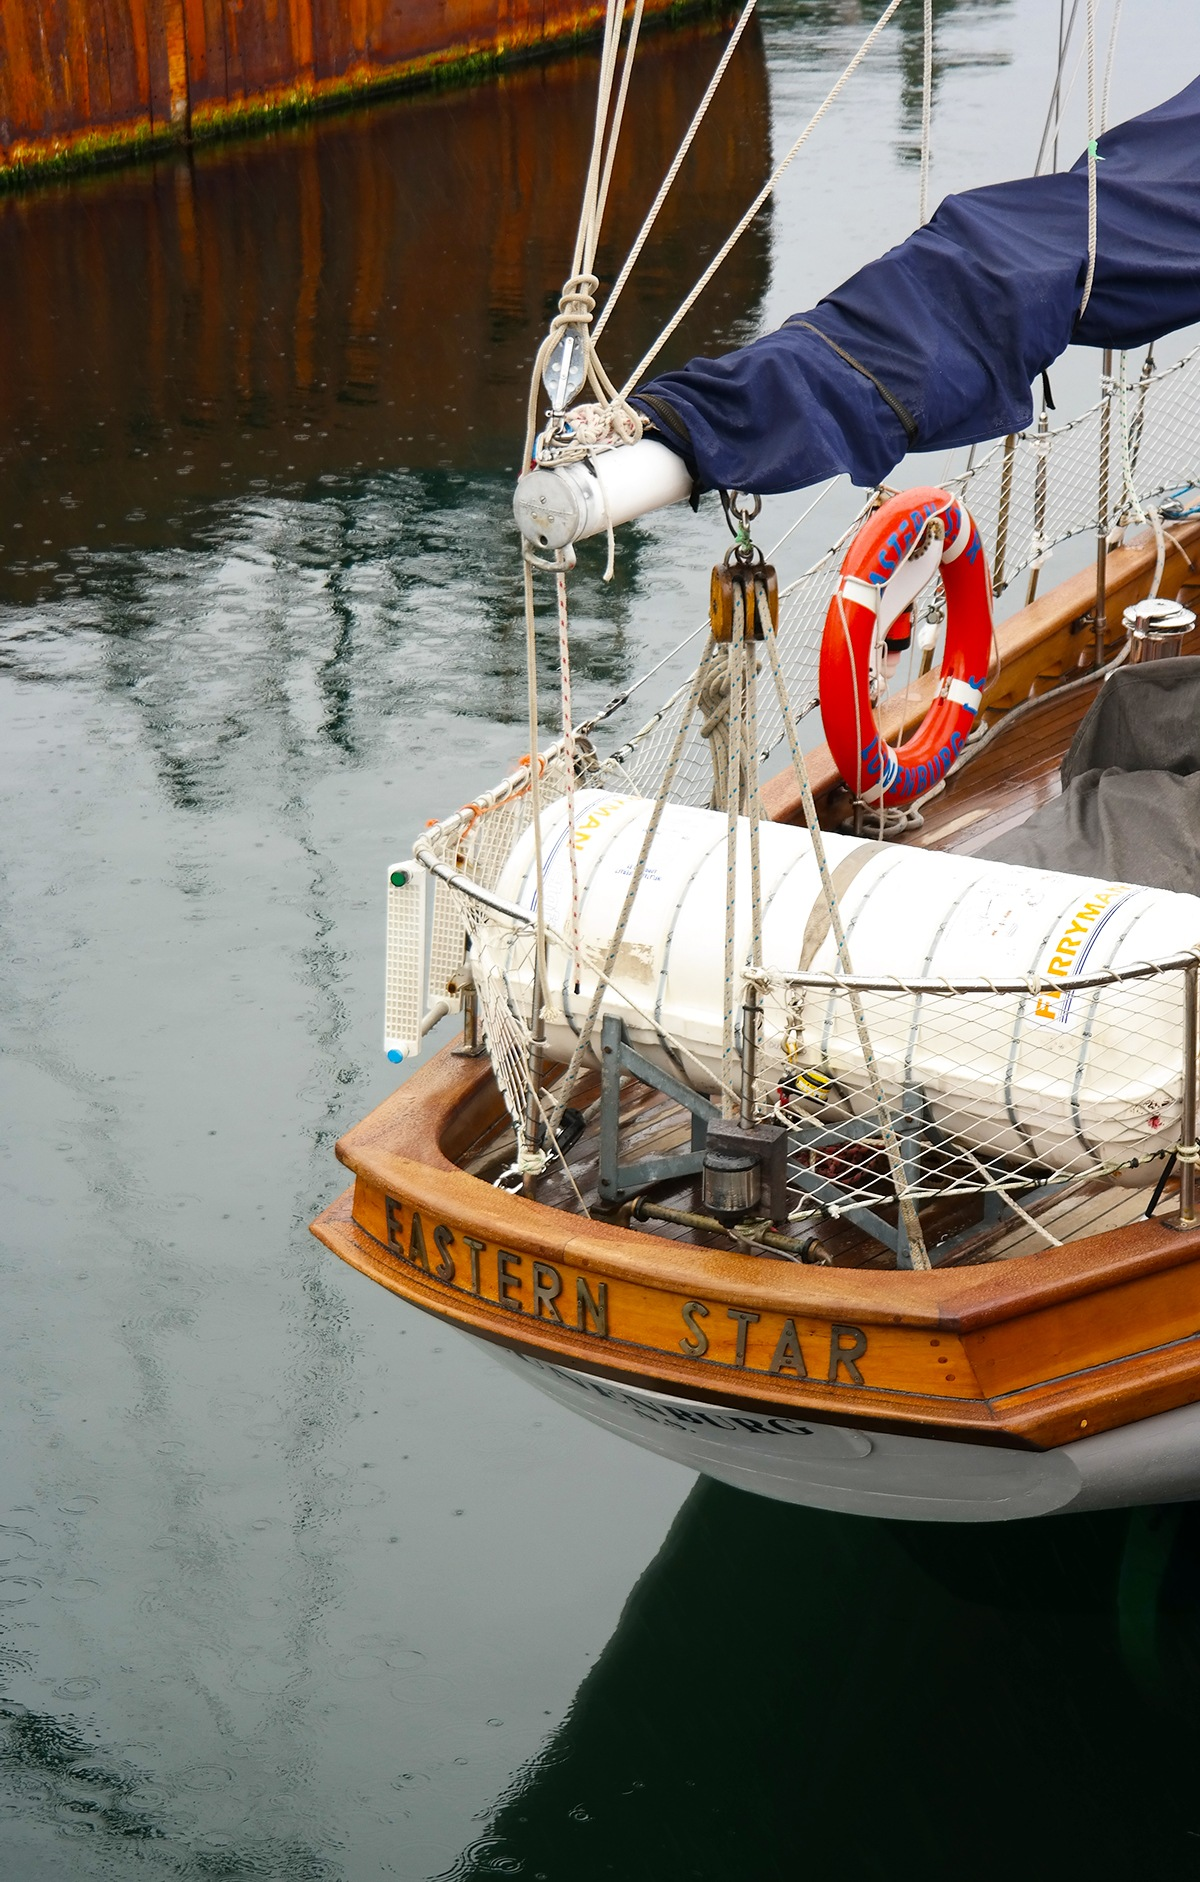 Northern Star - boat in Lunenburg, Nova Scotia, Canada